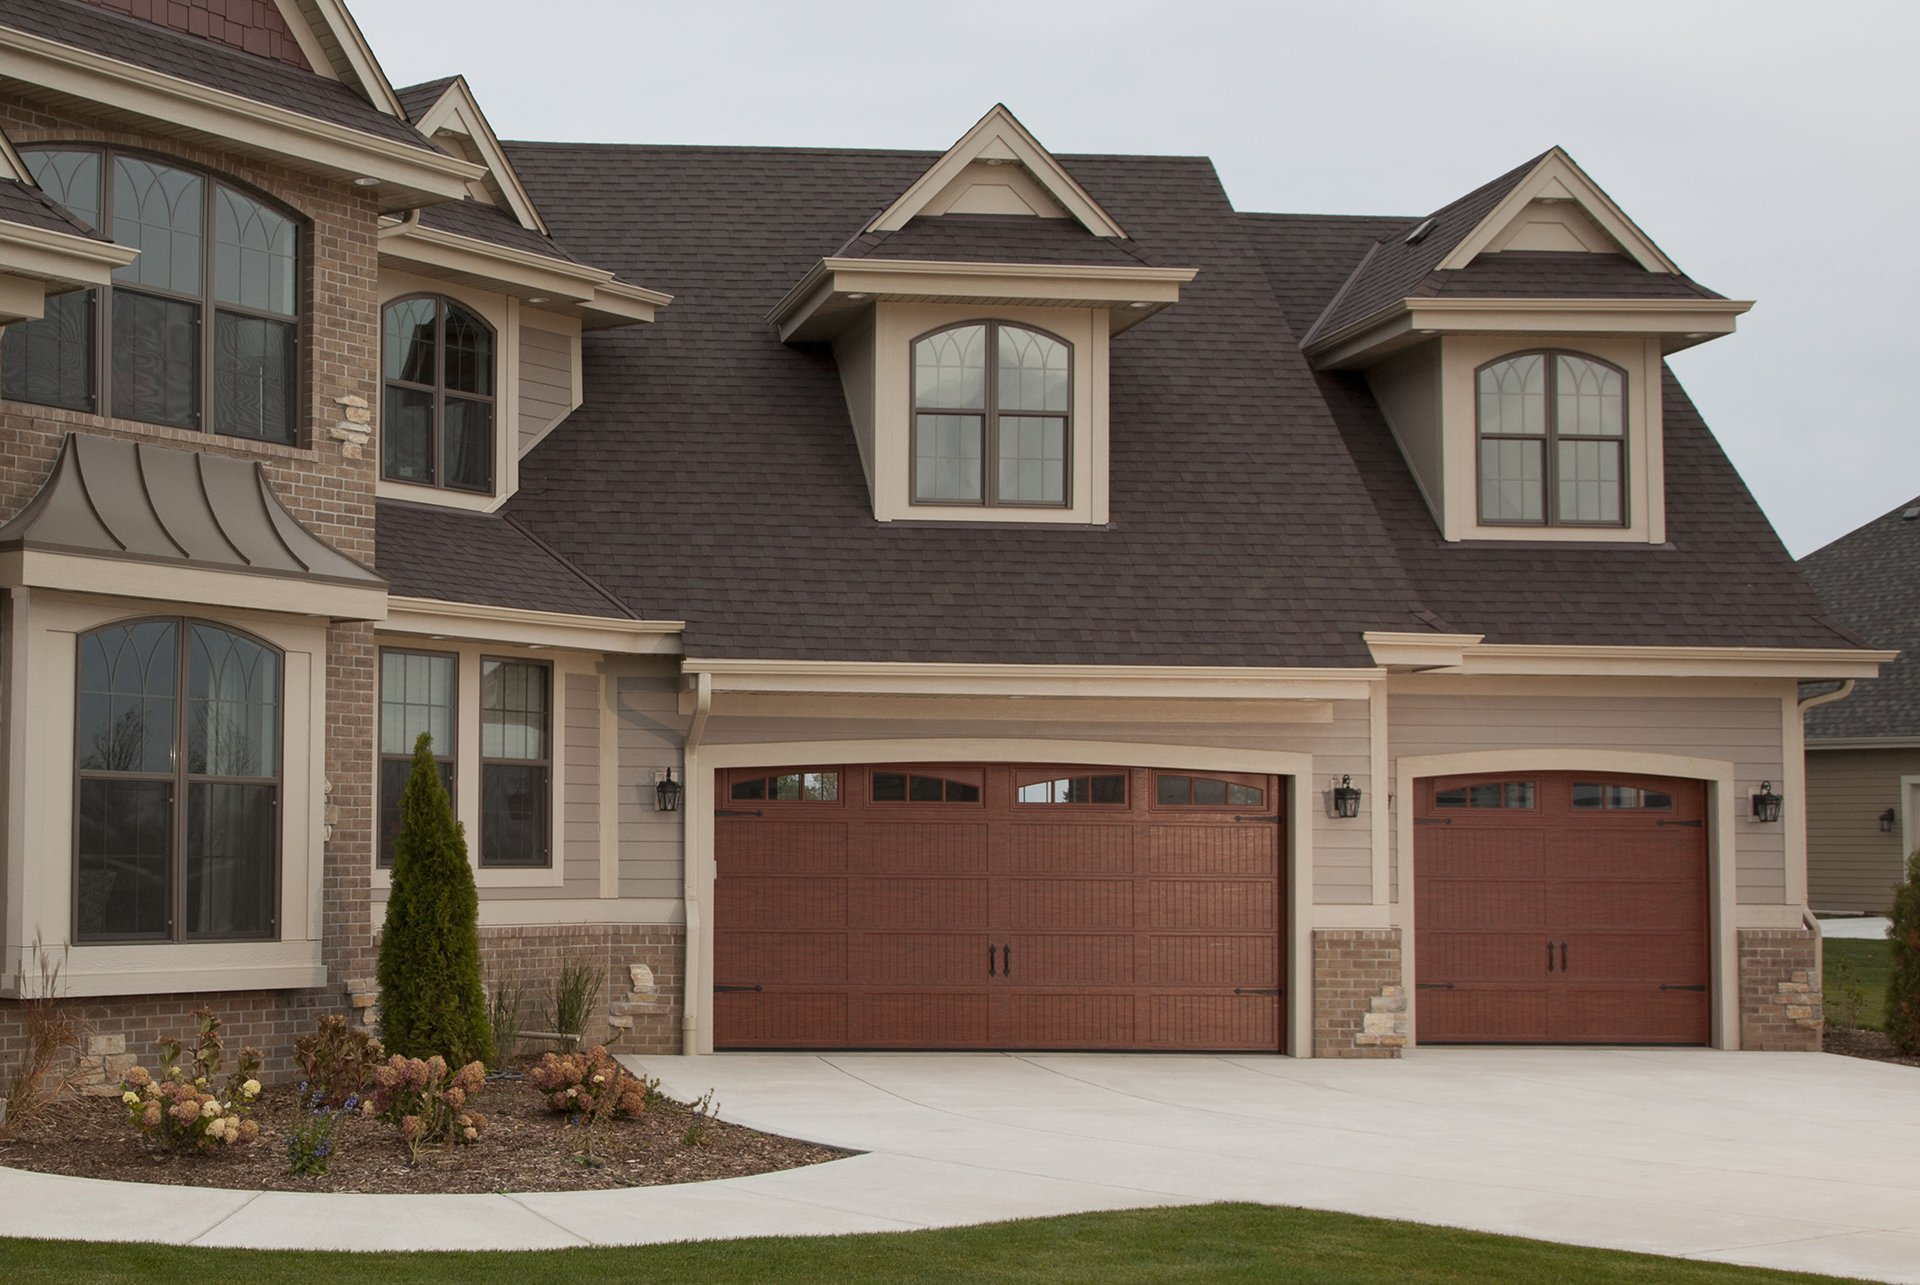 Residential Garage Door Image